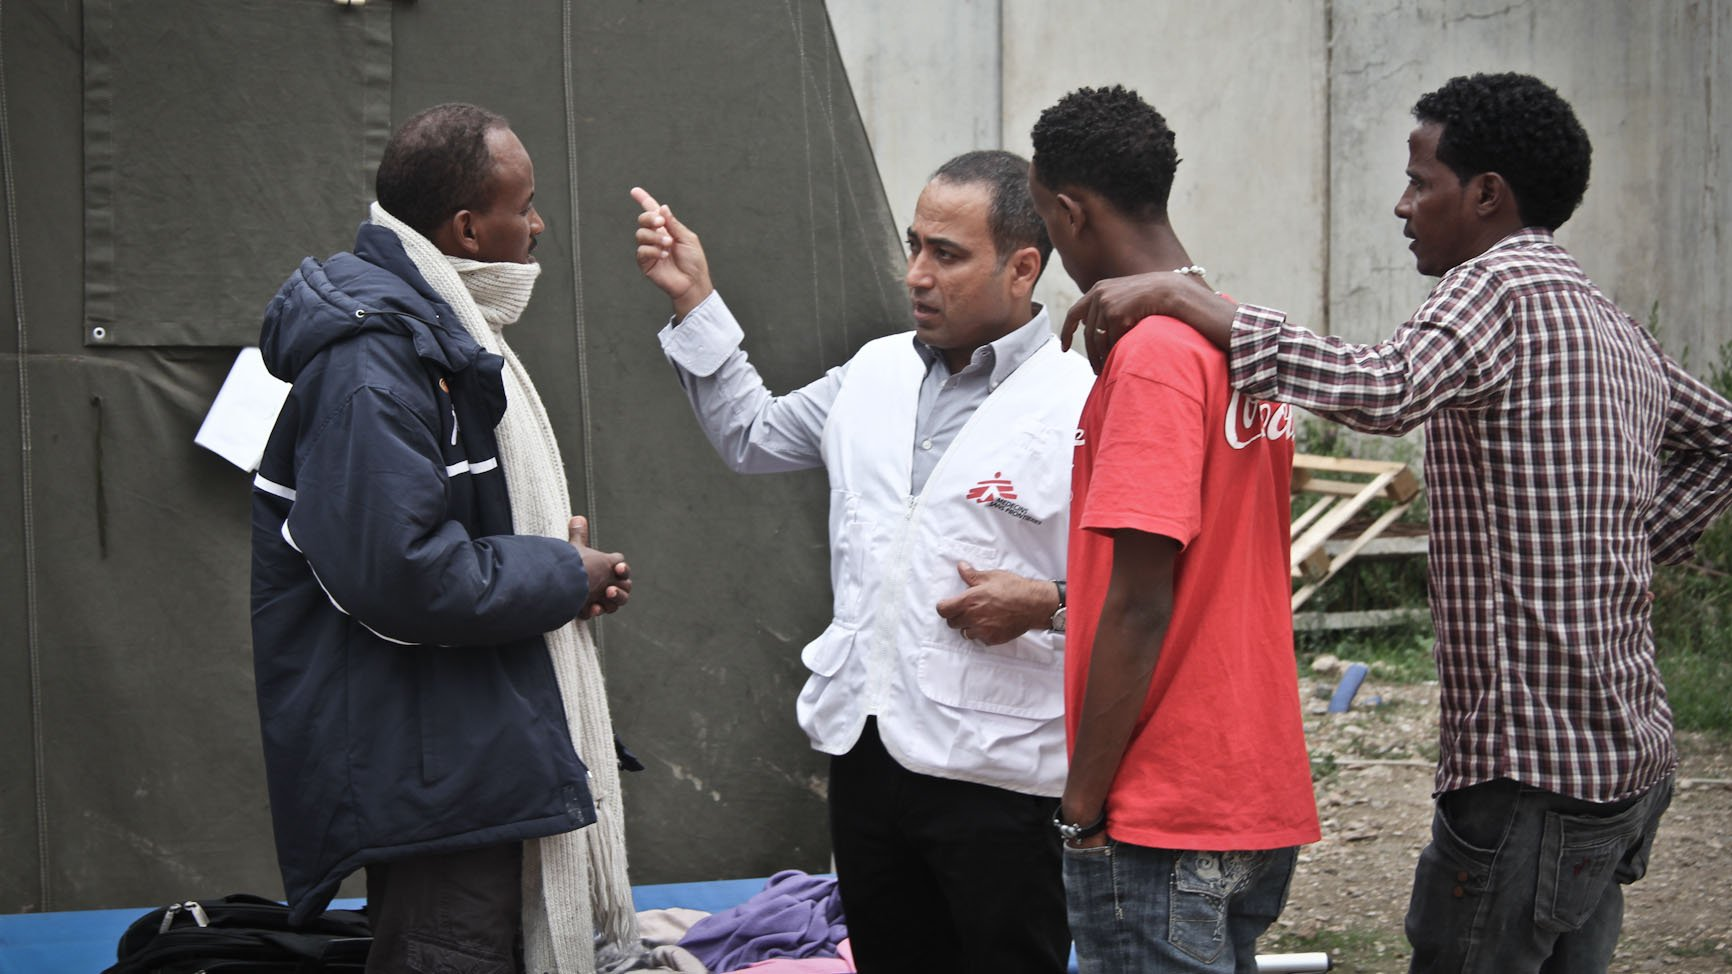 Ahmad Al Rousan is a cultural mediator for an MSF project in Rome providing psychological first aid to asylum seekers